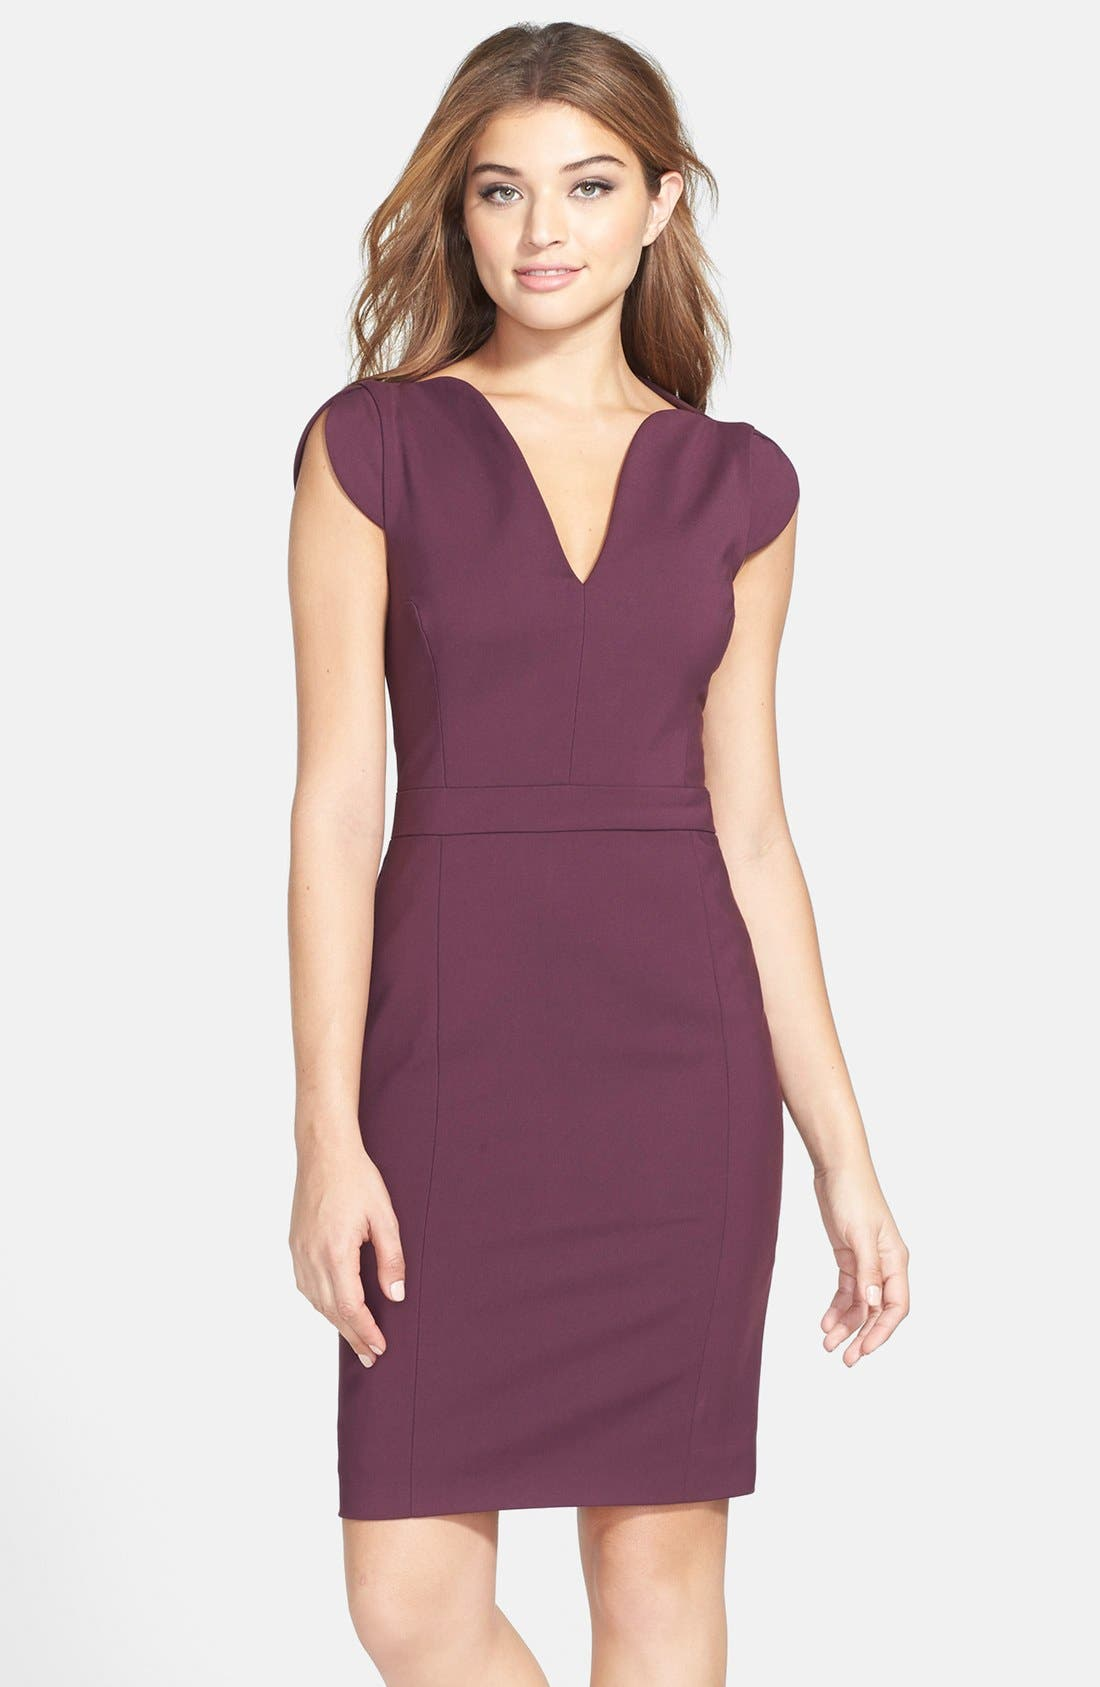 Alternate Image 1 Selected - French Connection 'Lolo' Stretch Sheath Dress